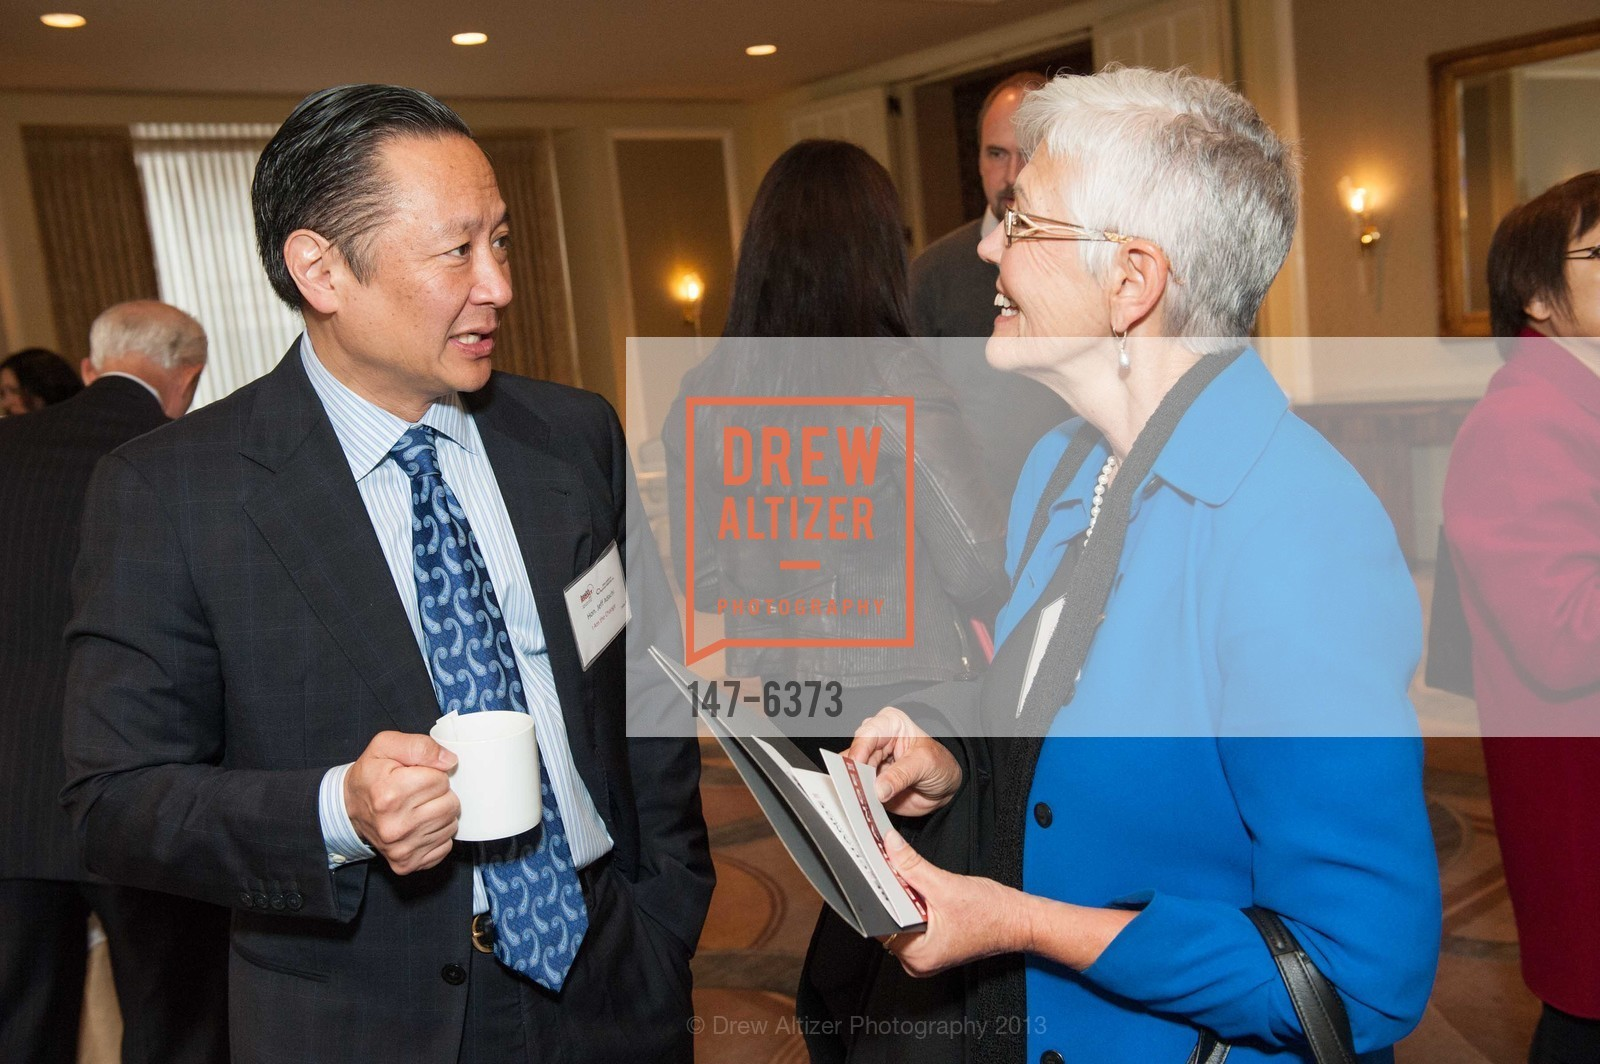 Jeff Adachi, Jeanie Woodburg, HEALTH RIGHT 360:  Be the Change 2013, US, November 8th, 2013,Drew Altizer, Drew Altizer Photography, full-service agency, private events, San Francisco photographer, photographer california